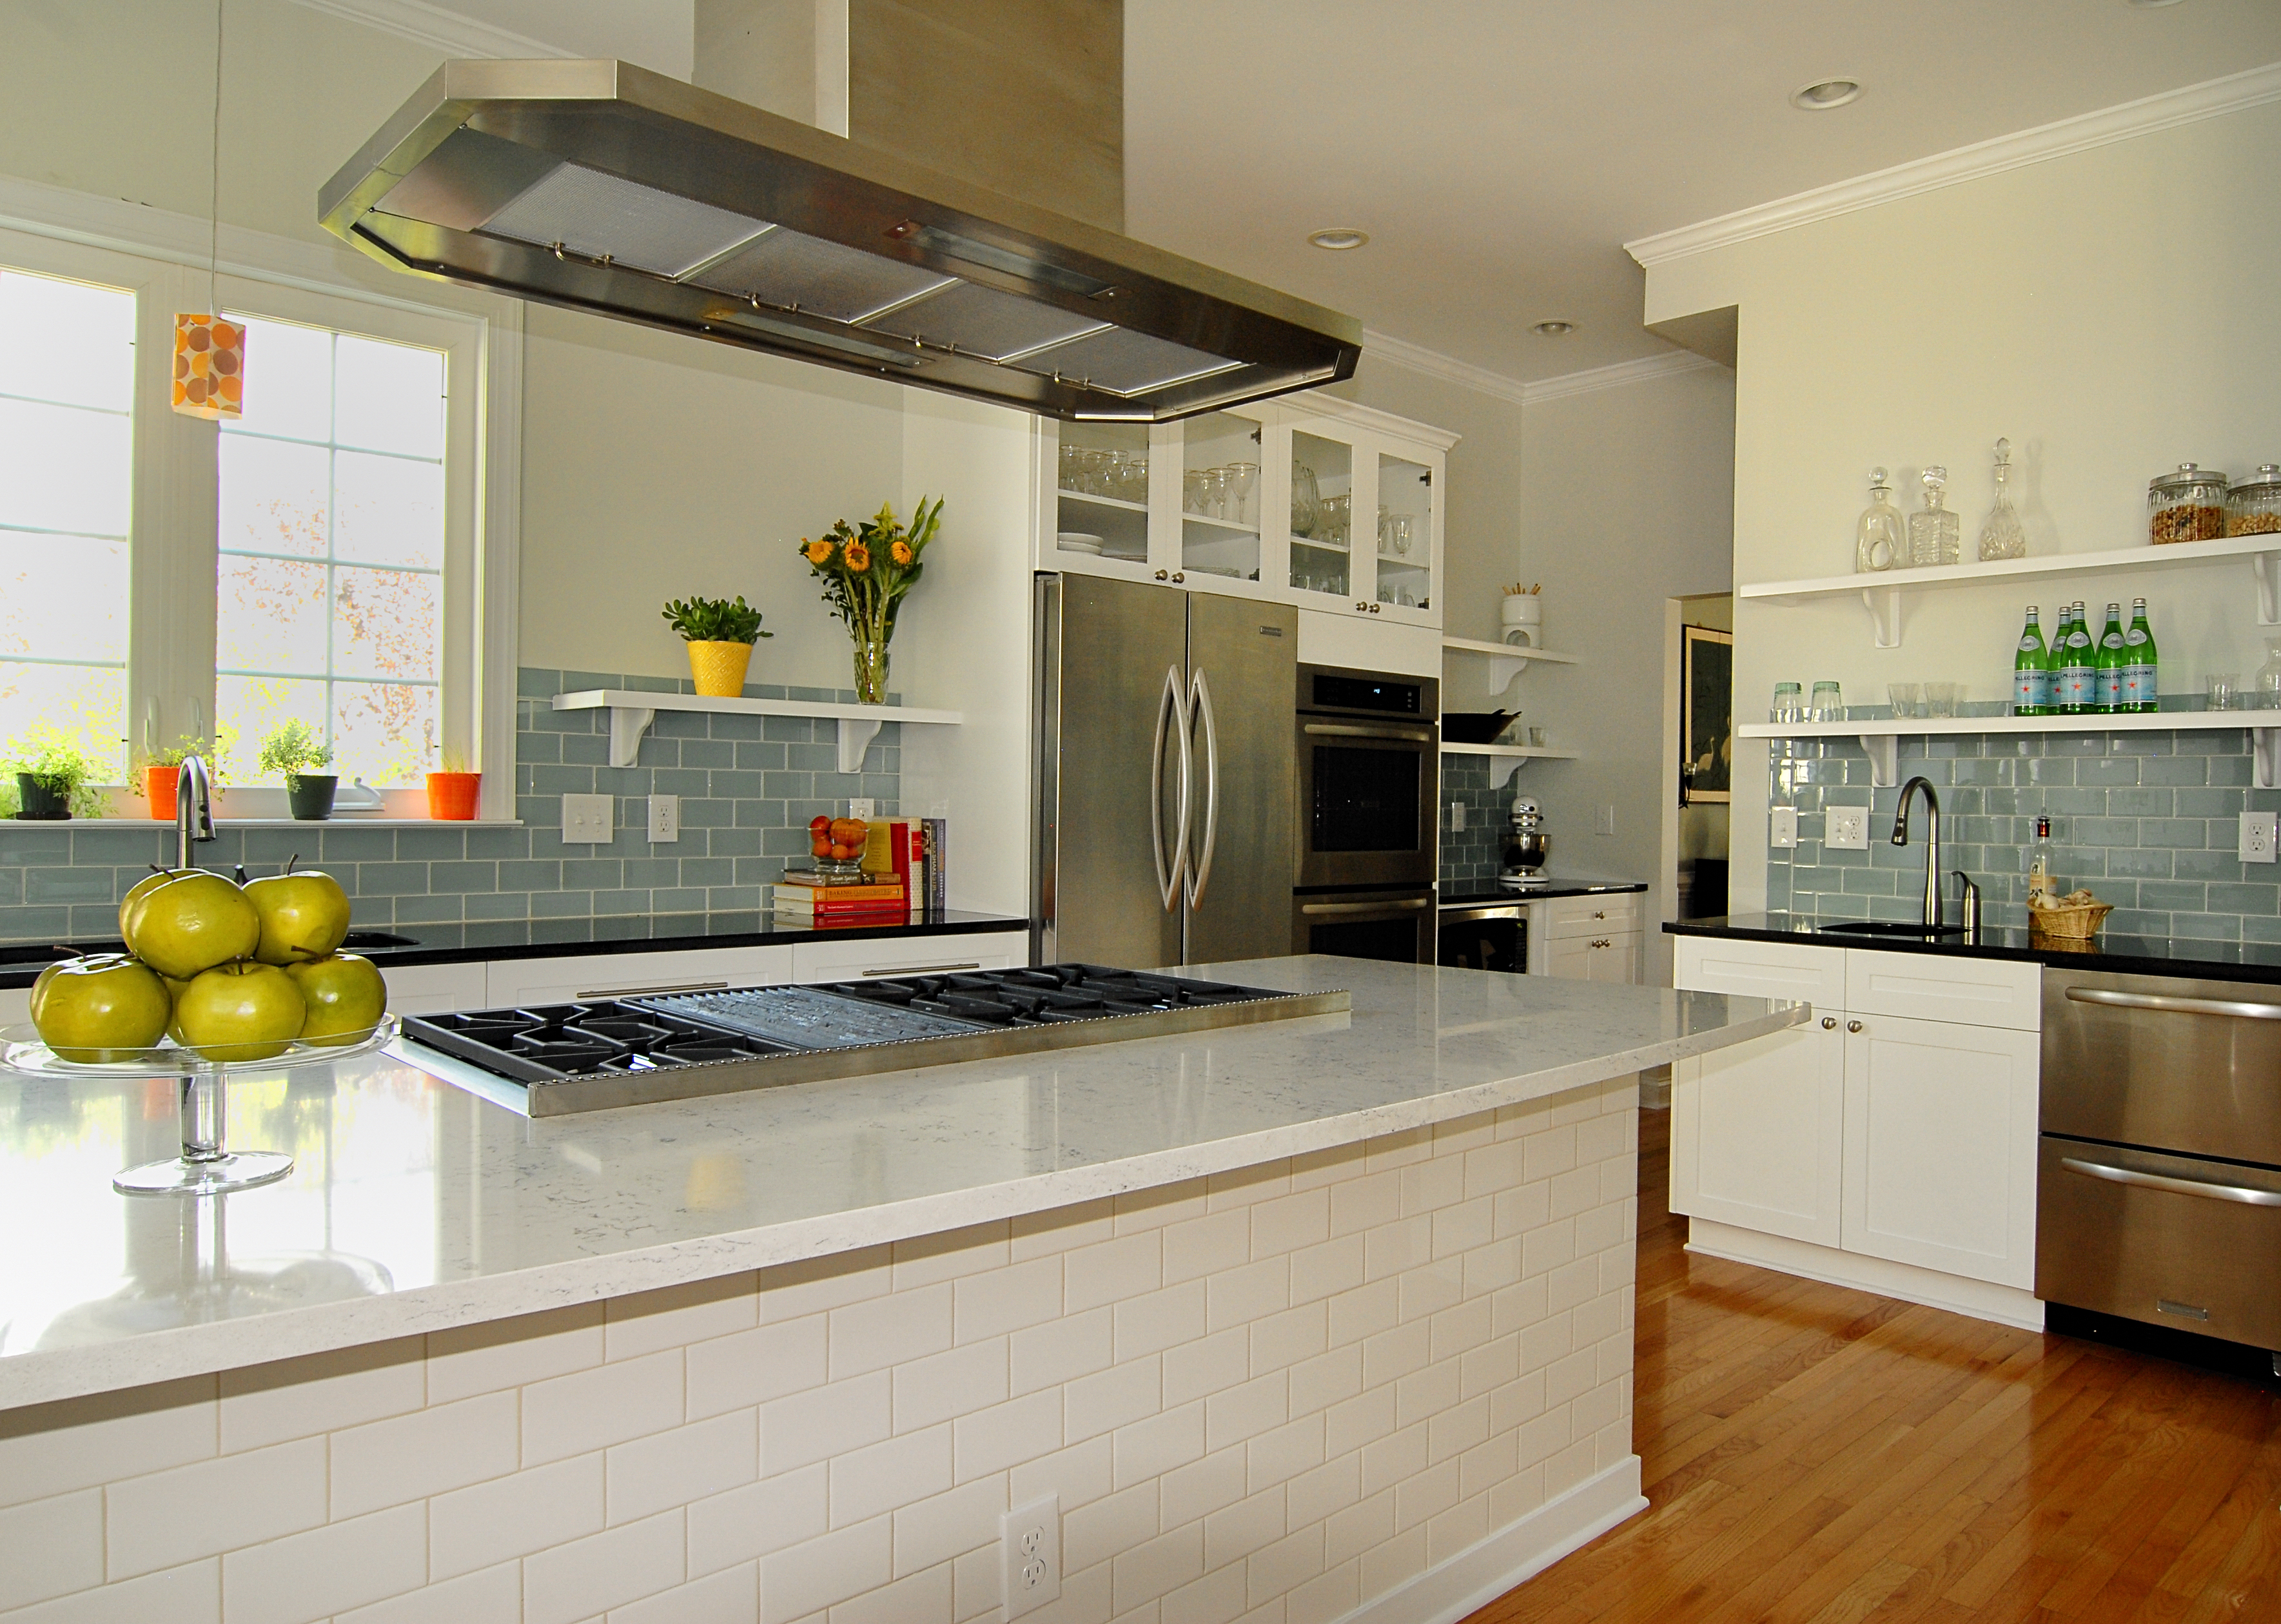 Contractor tips top 10 home remodeling don 39 ts slamans for Home construction contract tips